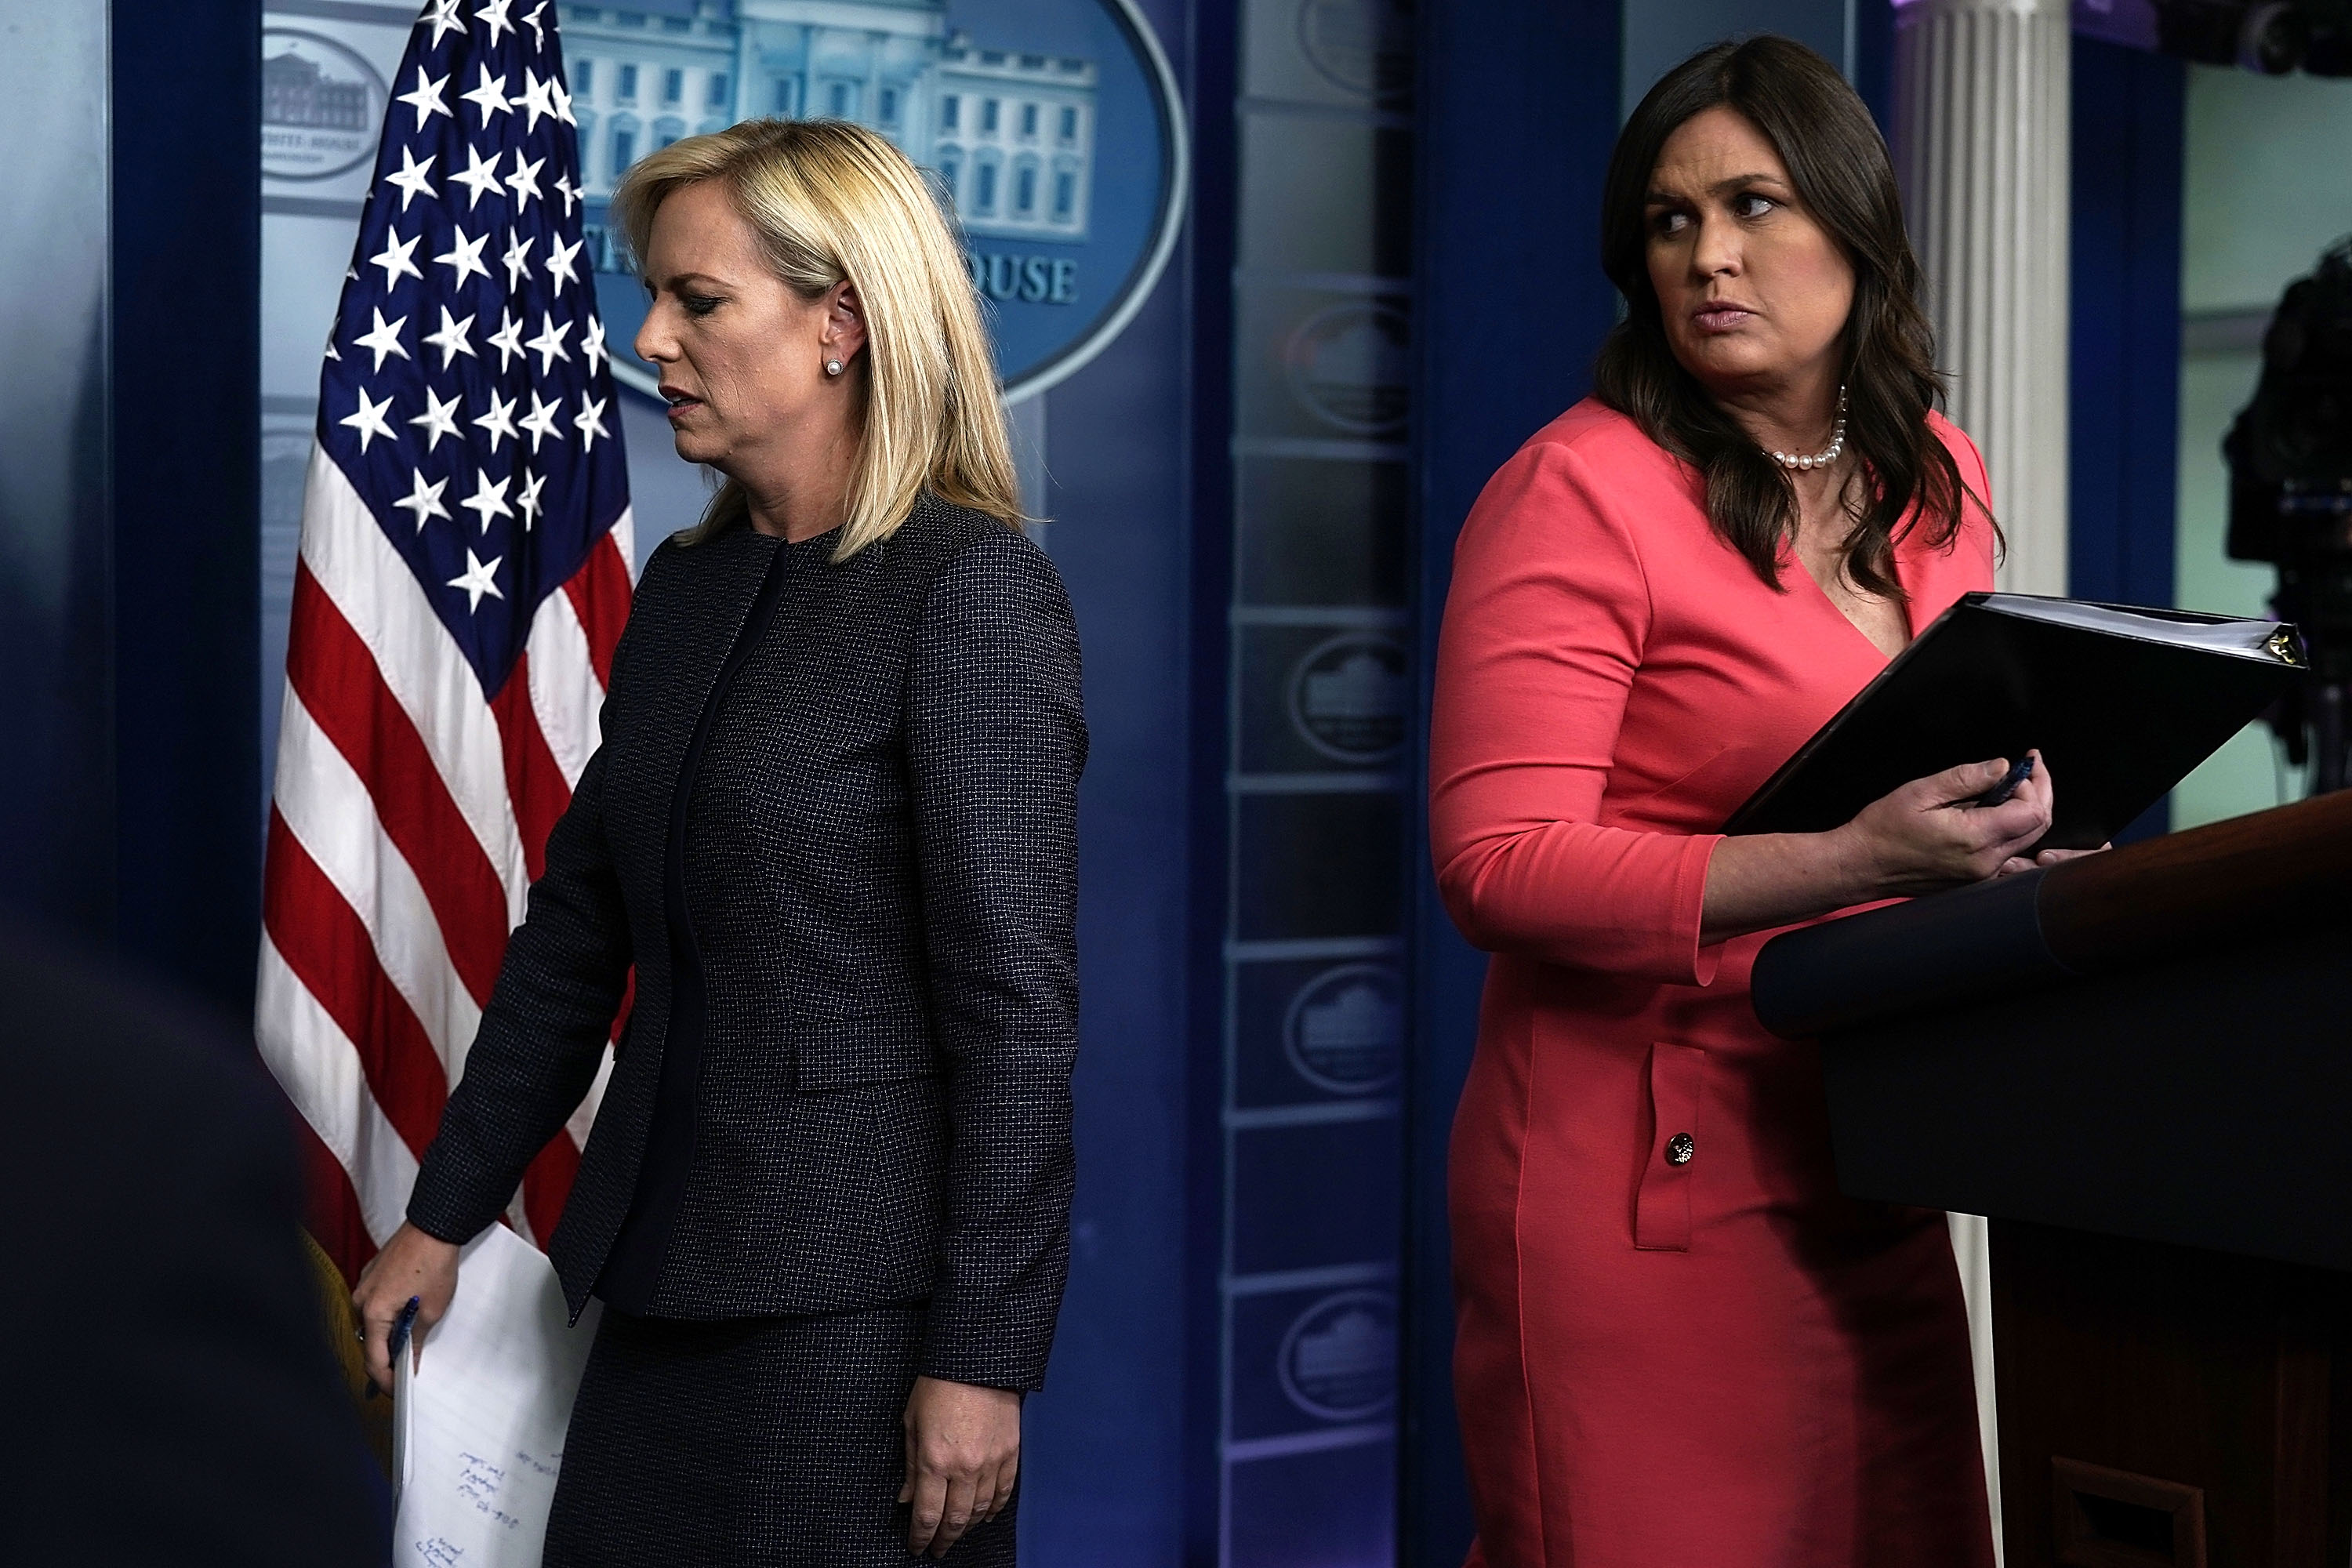 U.S. Secretary of Homeland Security Kirstjen Nielsen (L) leaves after she briefed members of the press as White House Press Secretary Sarah Sanders (R) looks on during a White House daily news briefing at the James Brady Press Briefing Room of the White House June 18, 2018 in Washington, DC. Nielsen joined White House Press Secretary Sarah Sanders at the daily news briefing to answer questions from members of the White House Press Corps.   (Photo by Alex Wong/Getty Images)